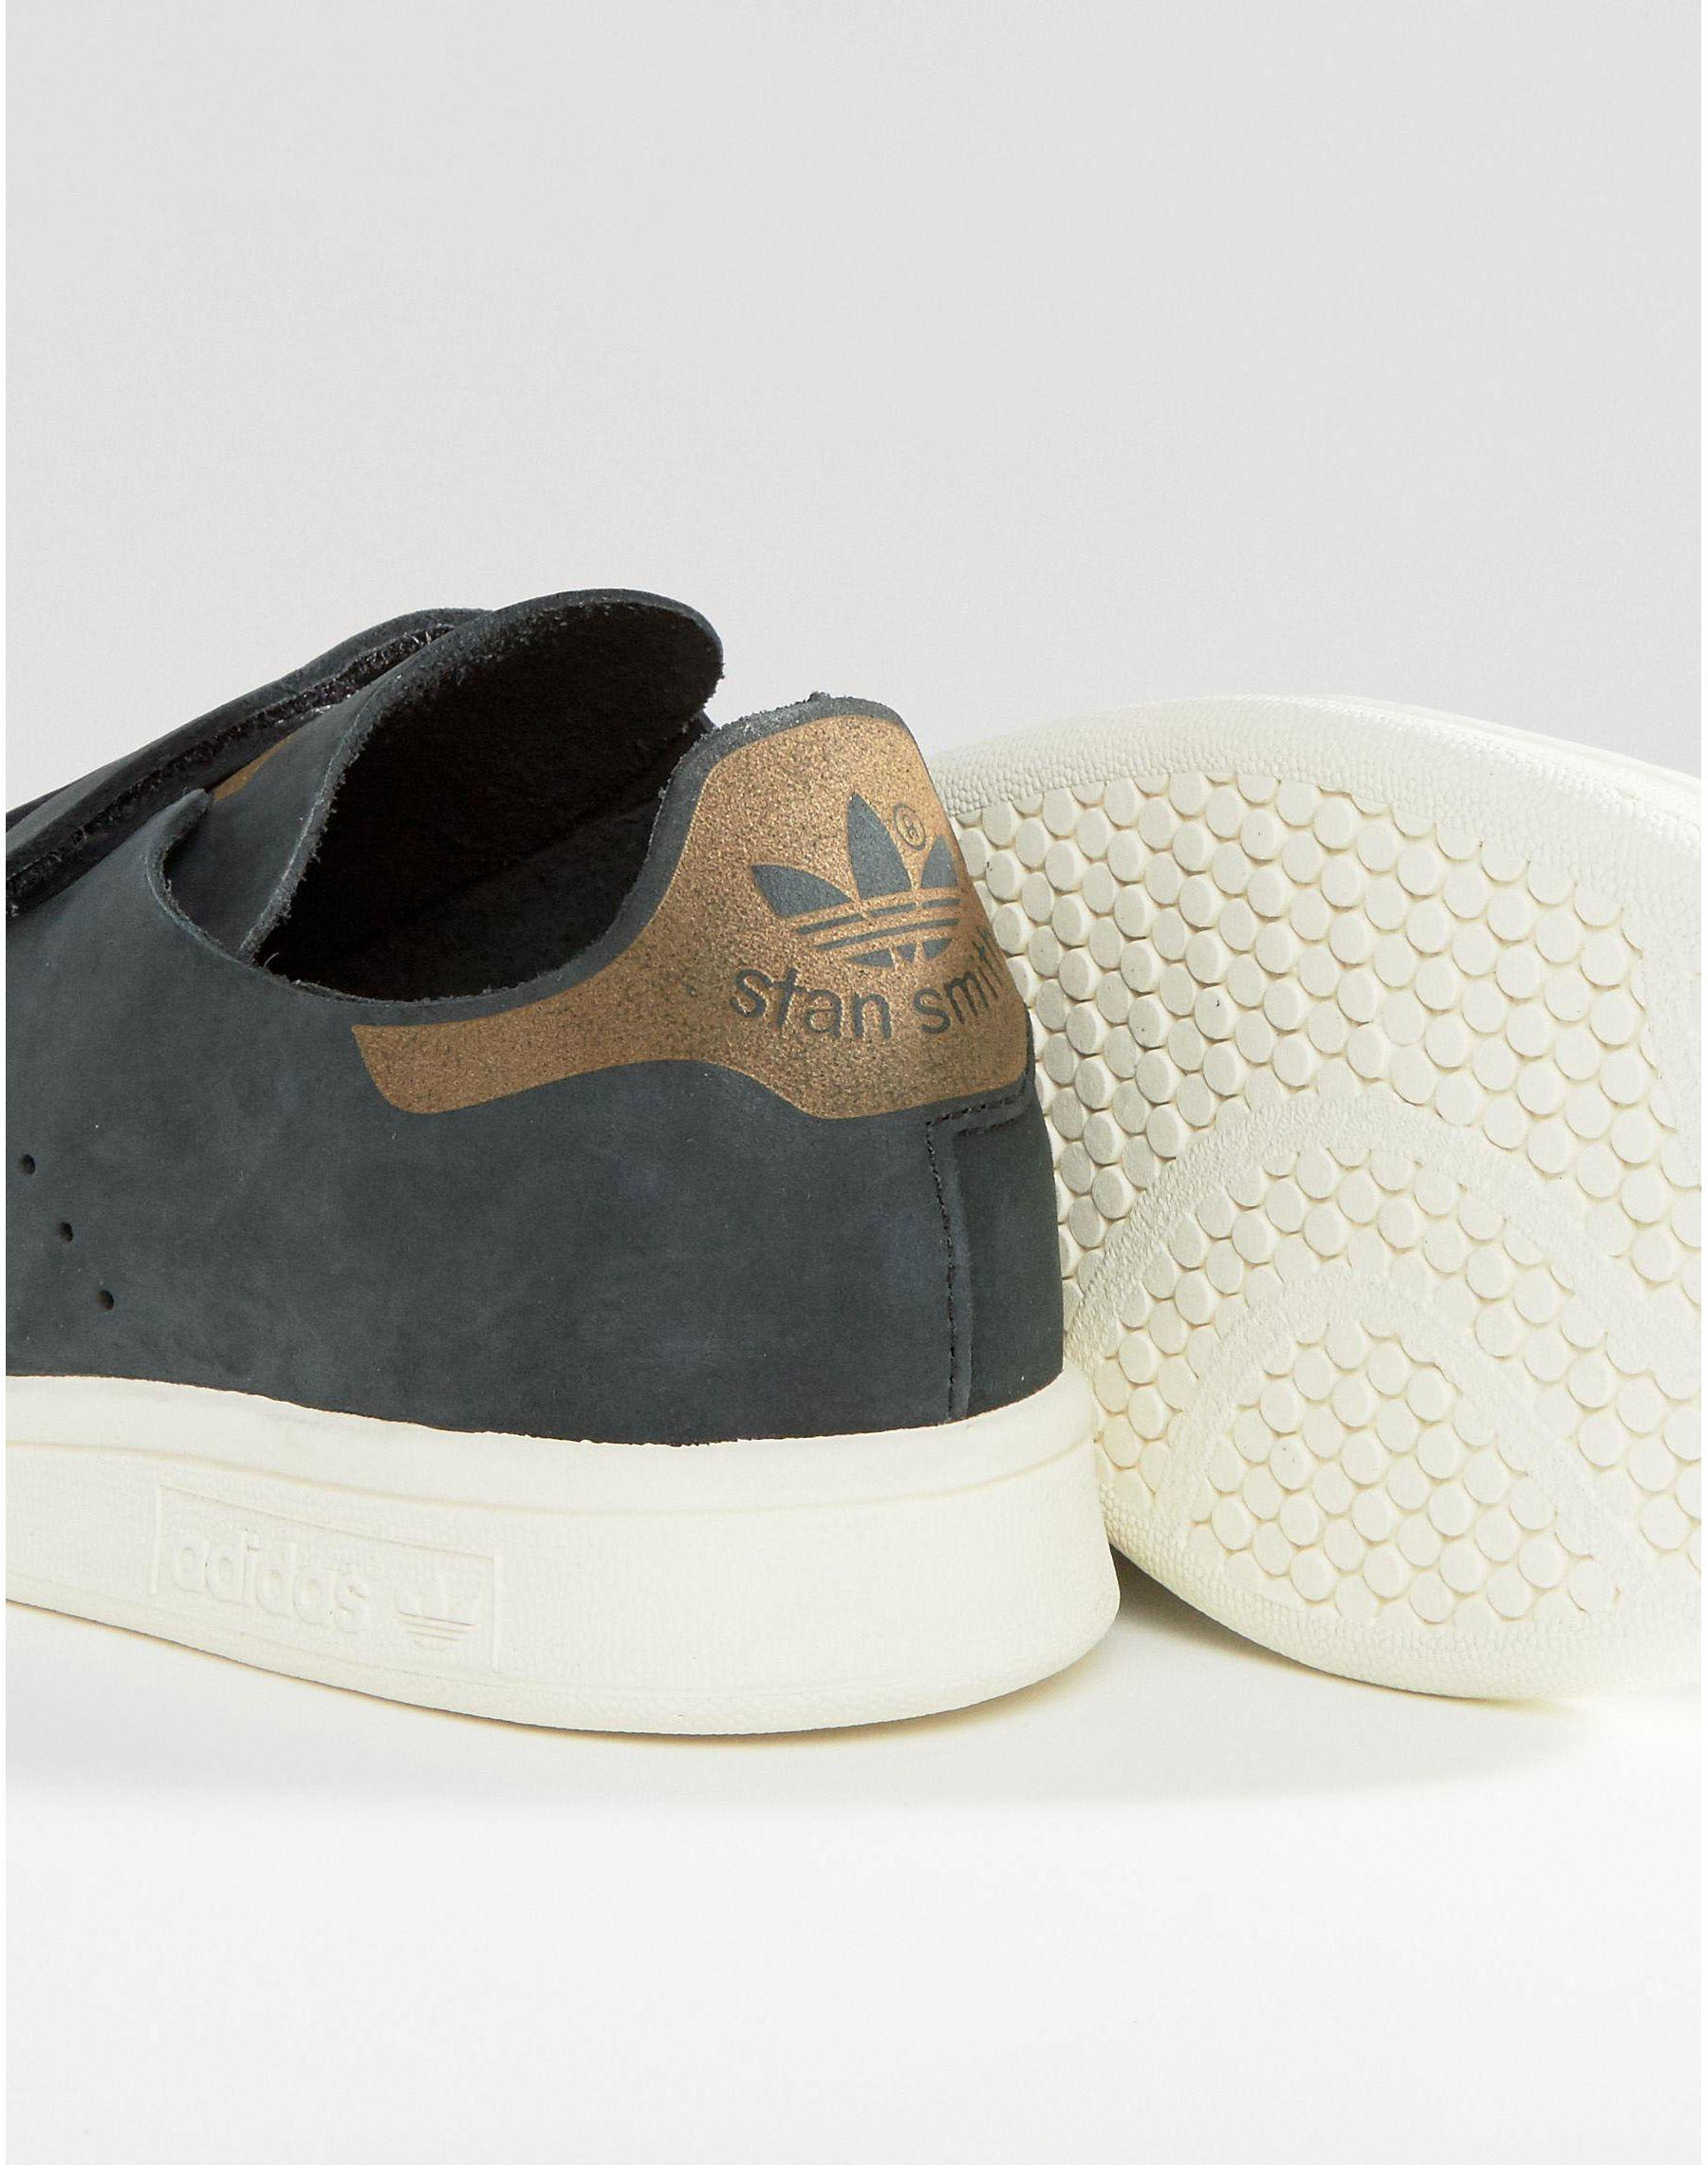 adidas black nubuck leather stan smith